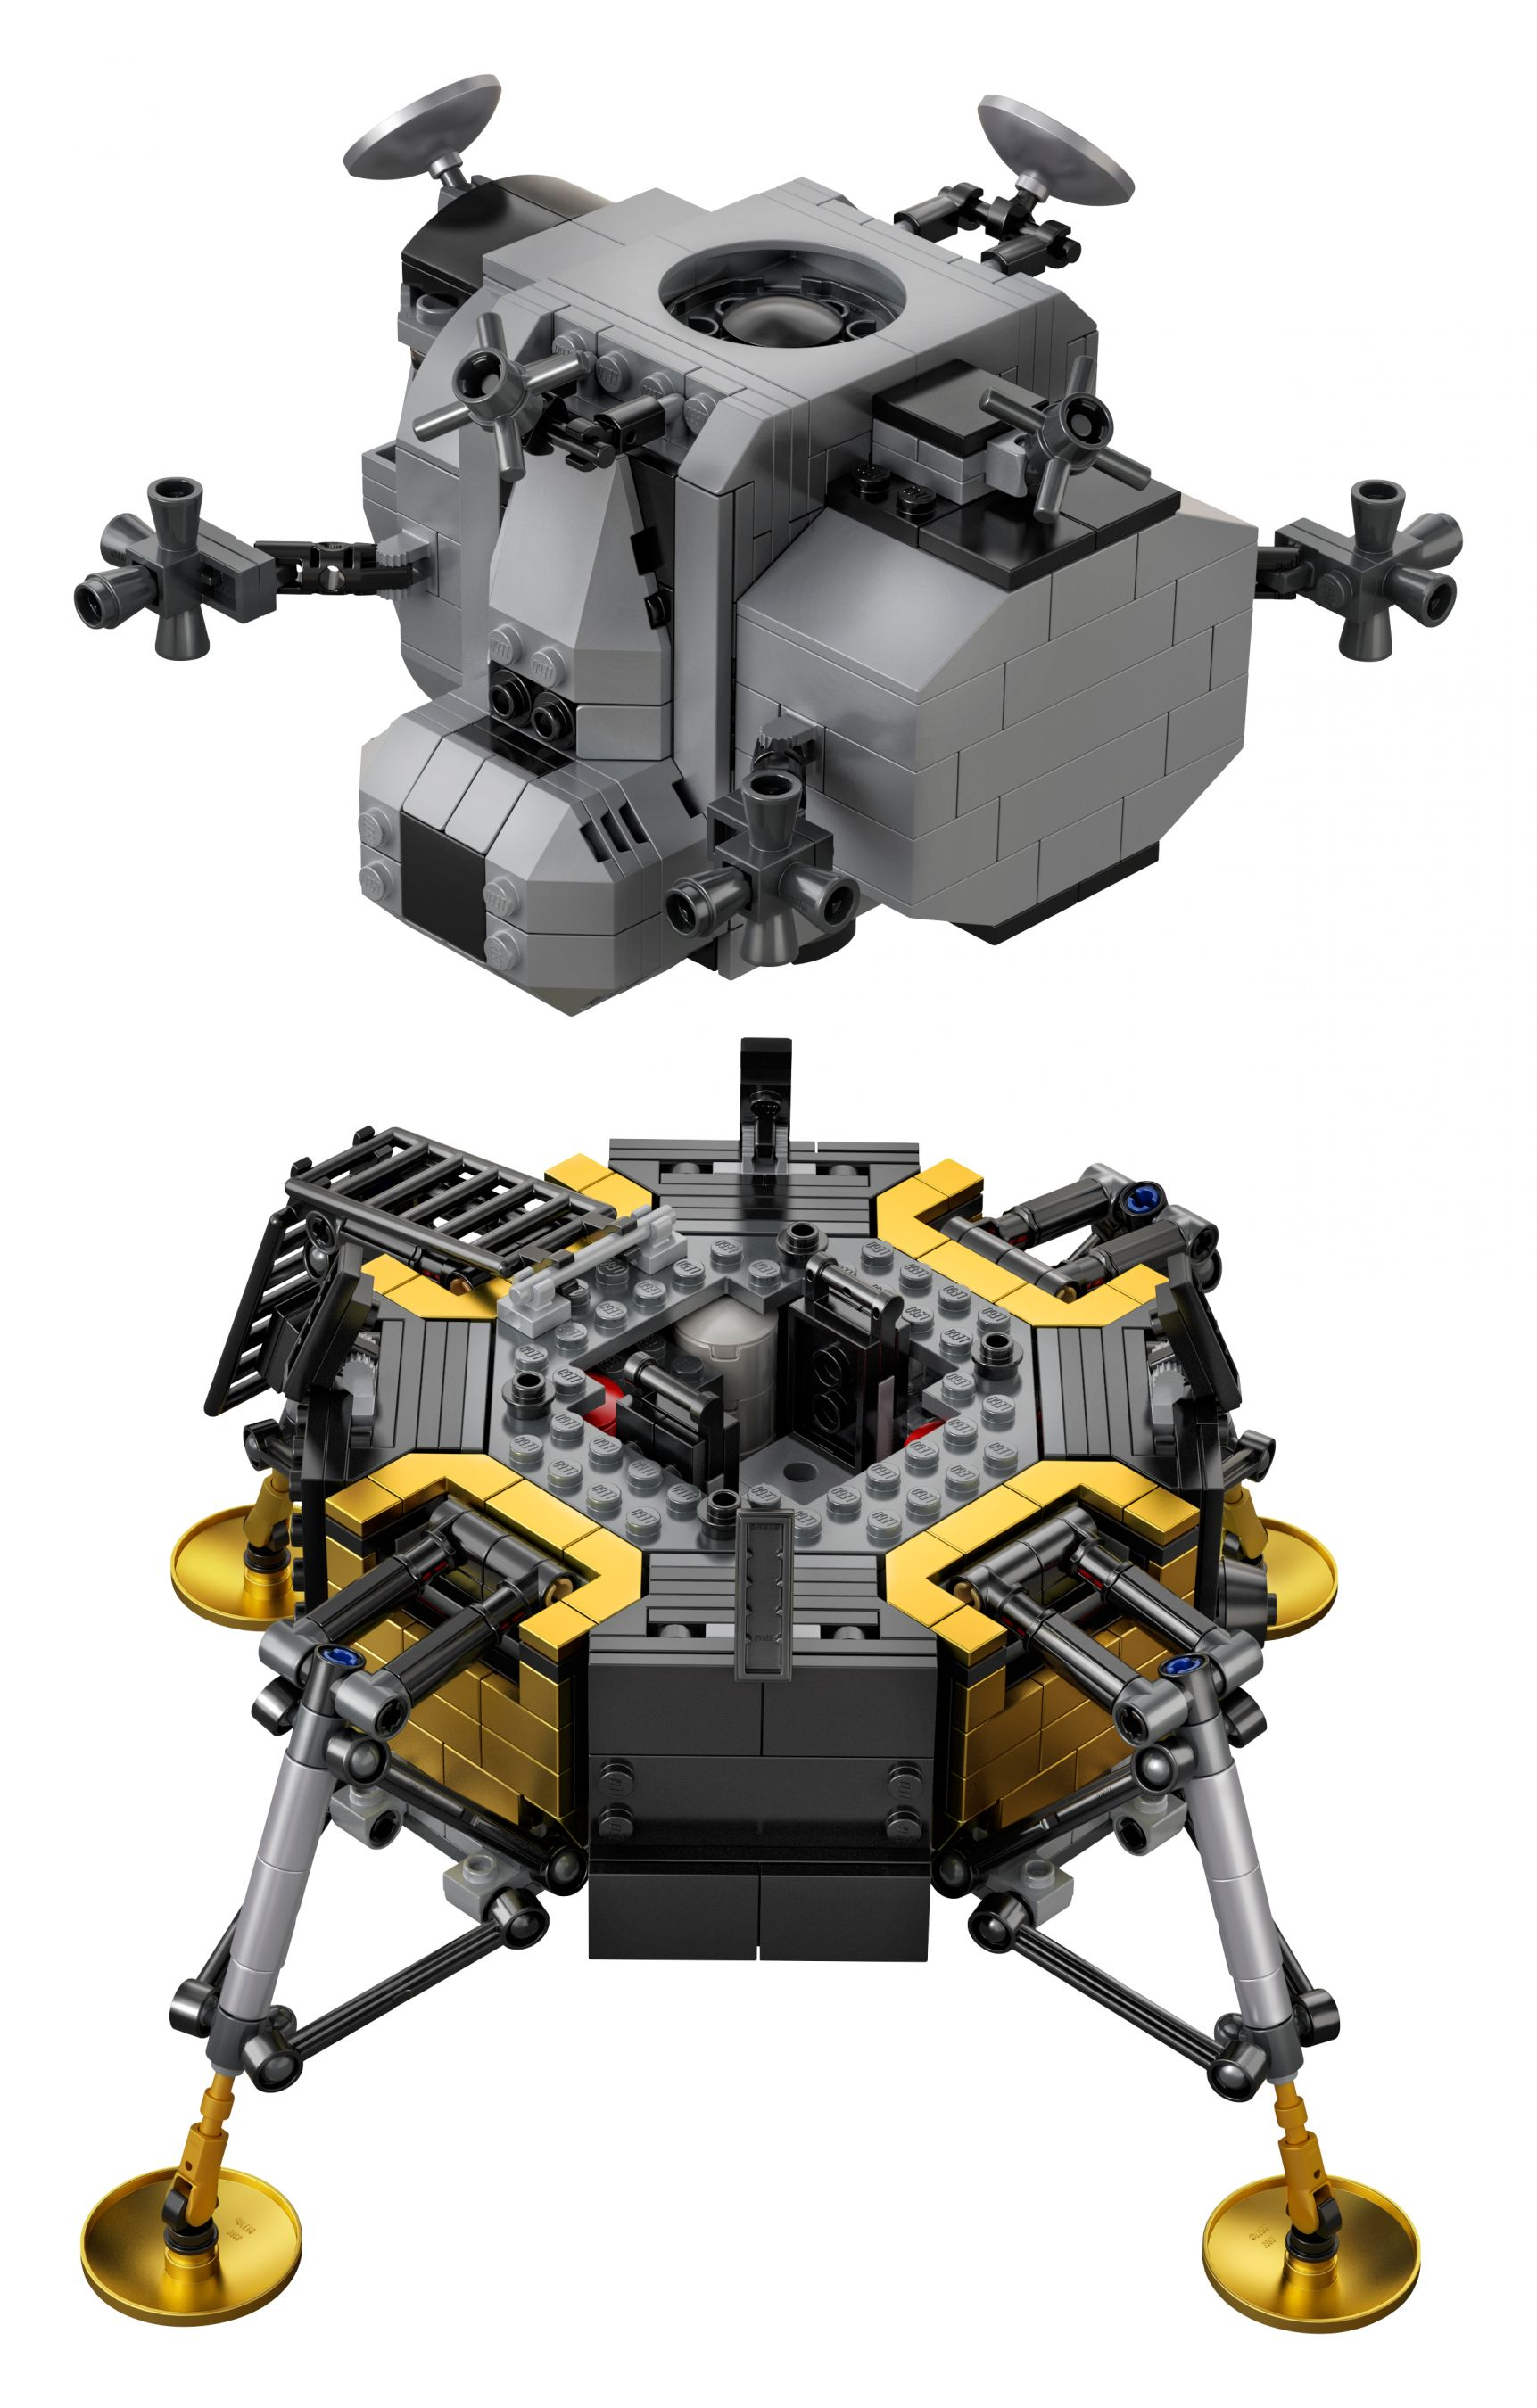 LEGO Advanced Models 10266 NASA Apollo 11 Mondlandefähre LEGO_10266_alt6.jpg